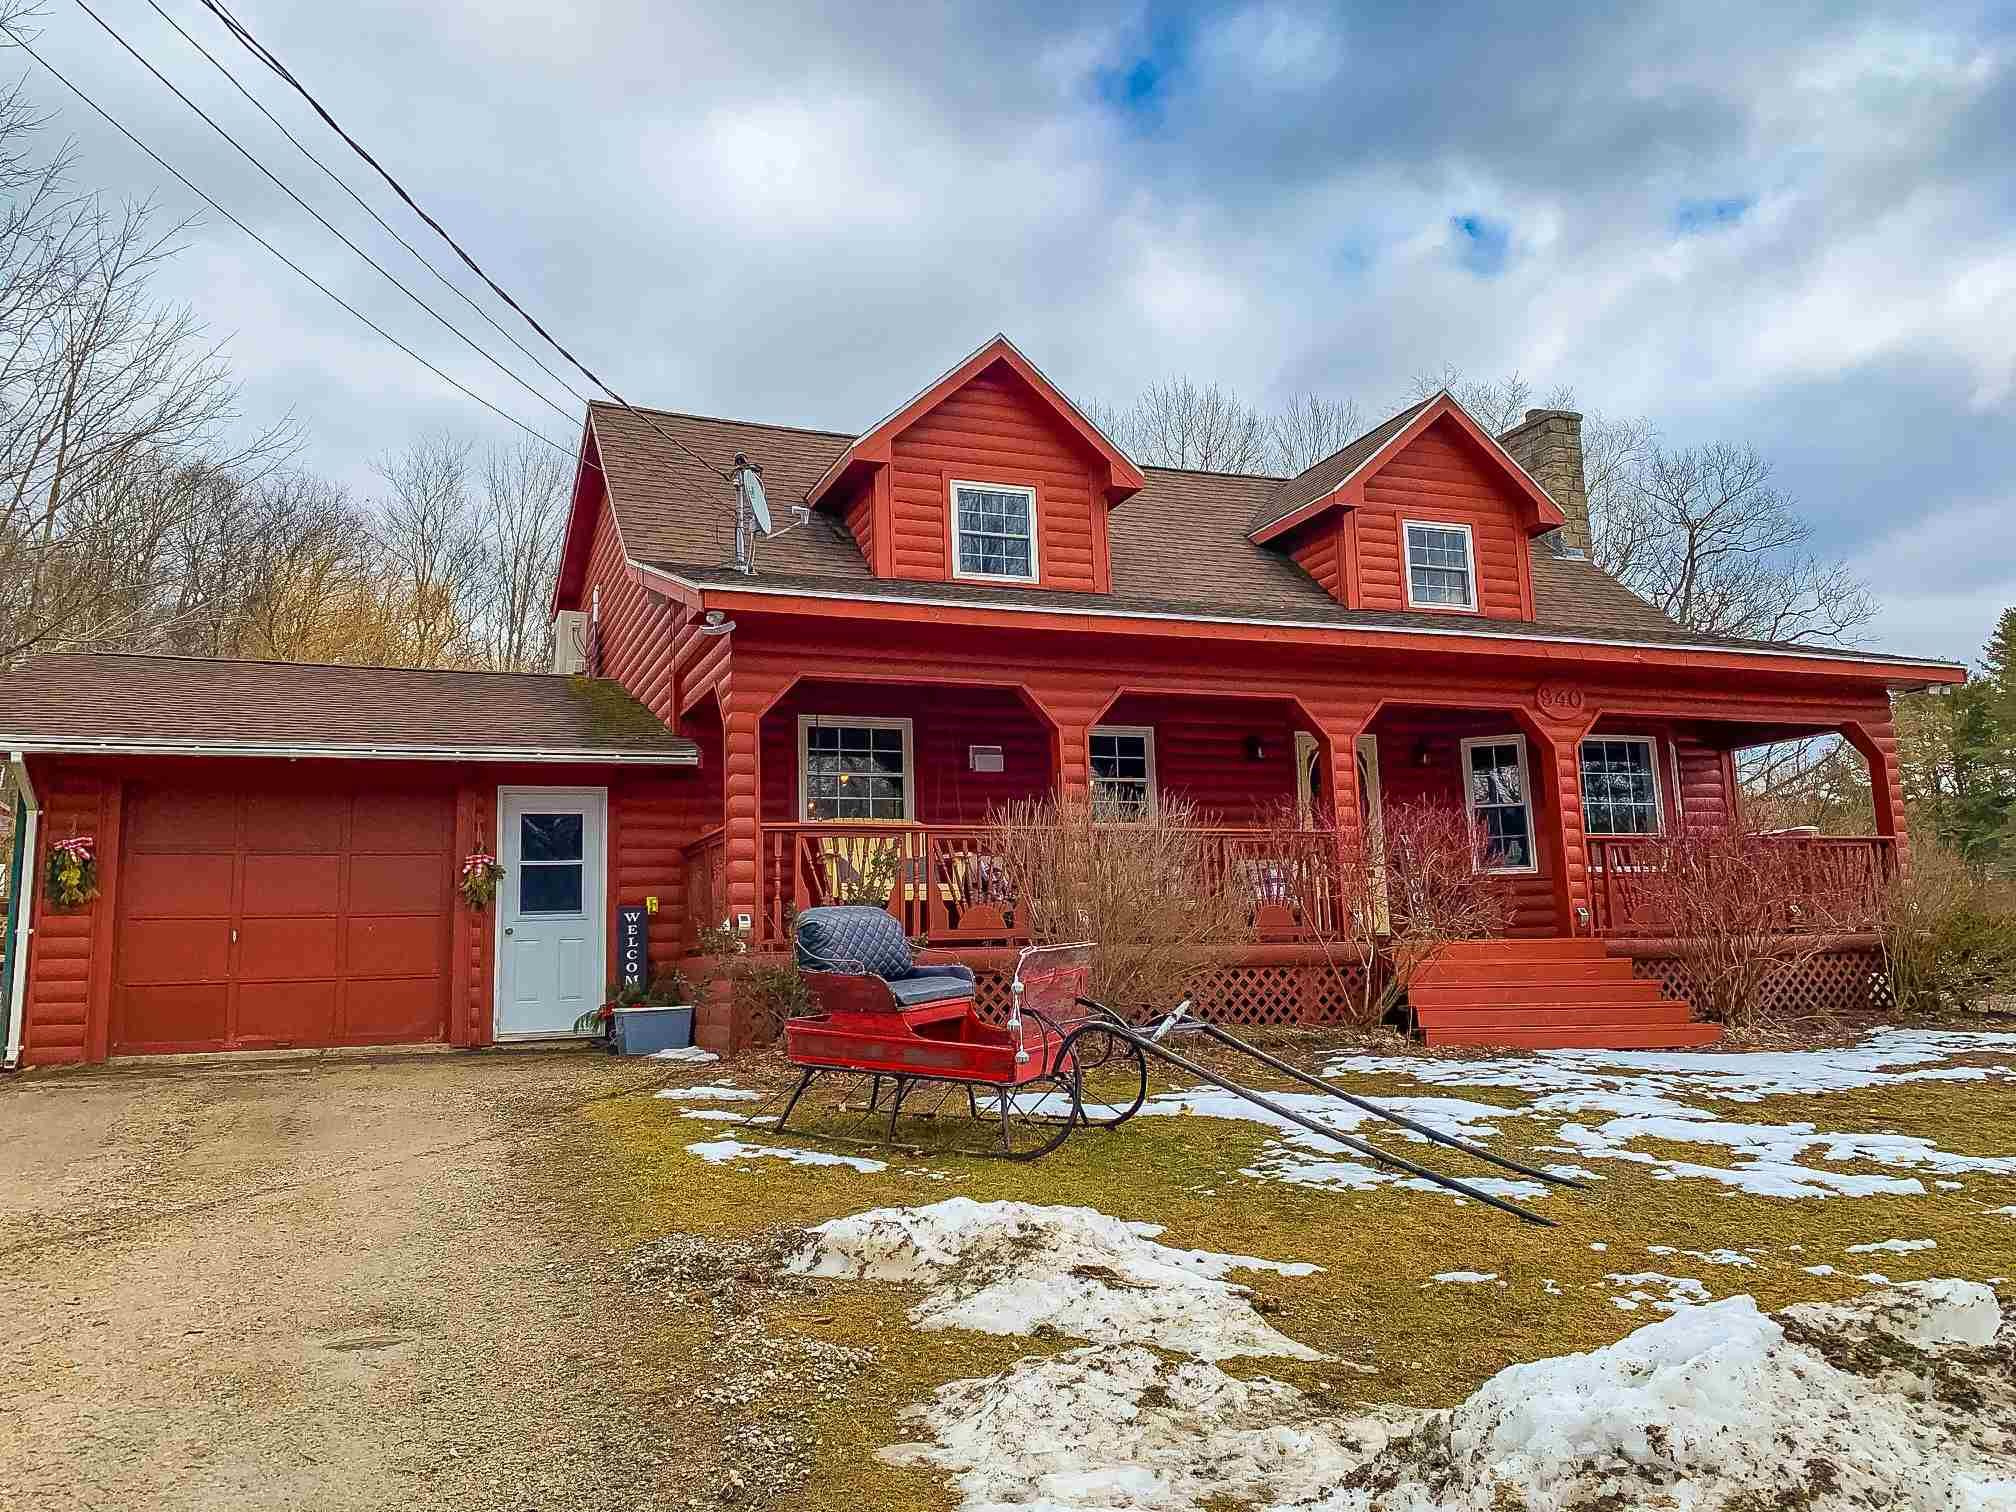 Main Photo: 940 Highway 10 in Cookville: 405-Lunenburg County Residential for sale (South Shore)  : MLS®# 202103389